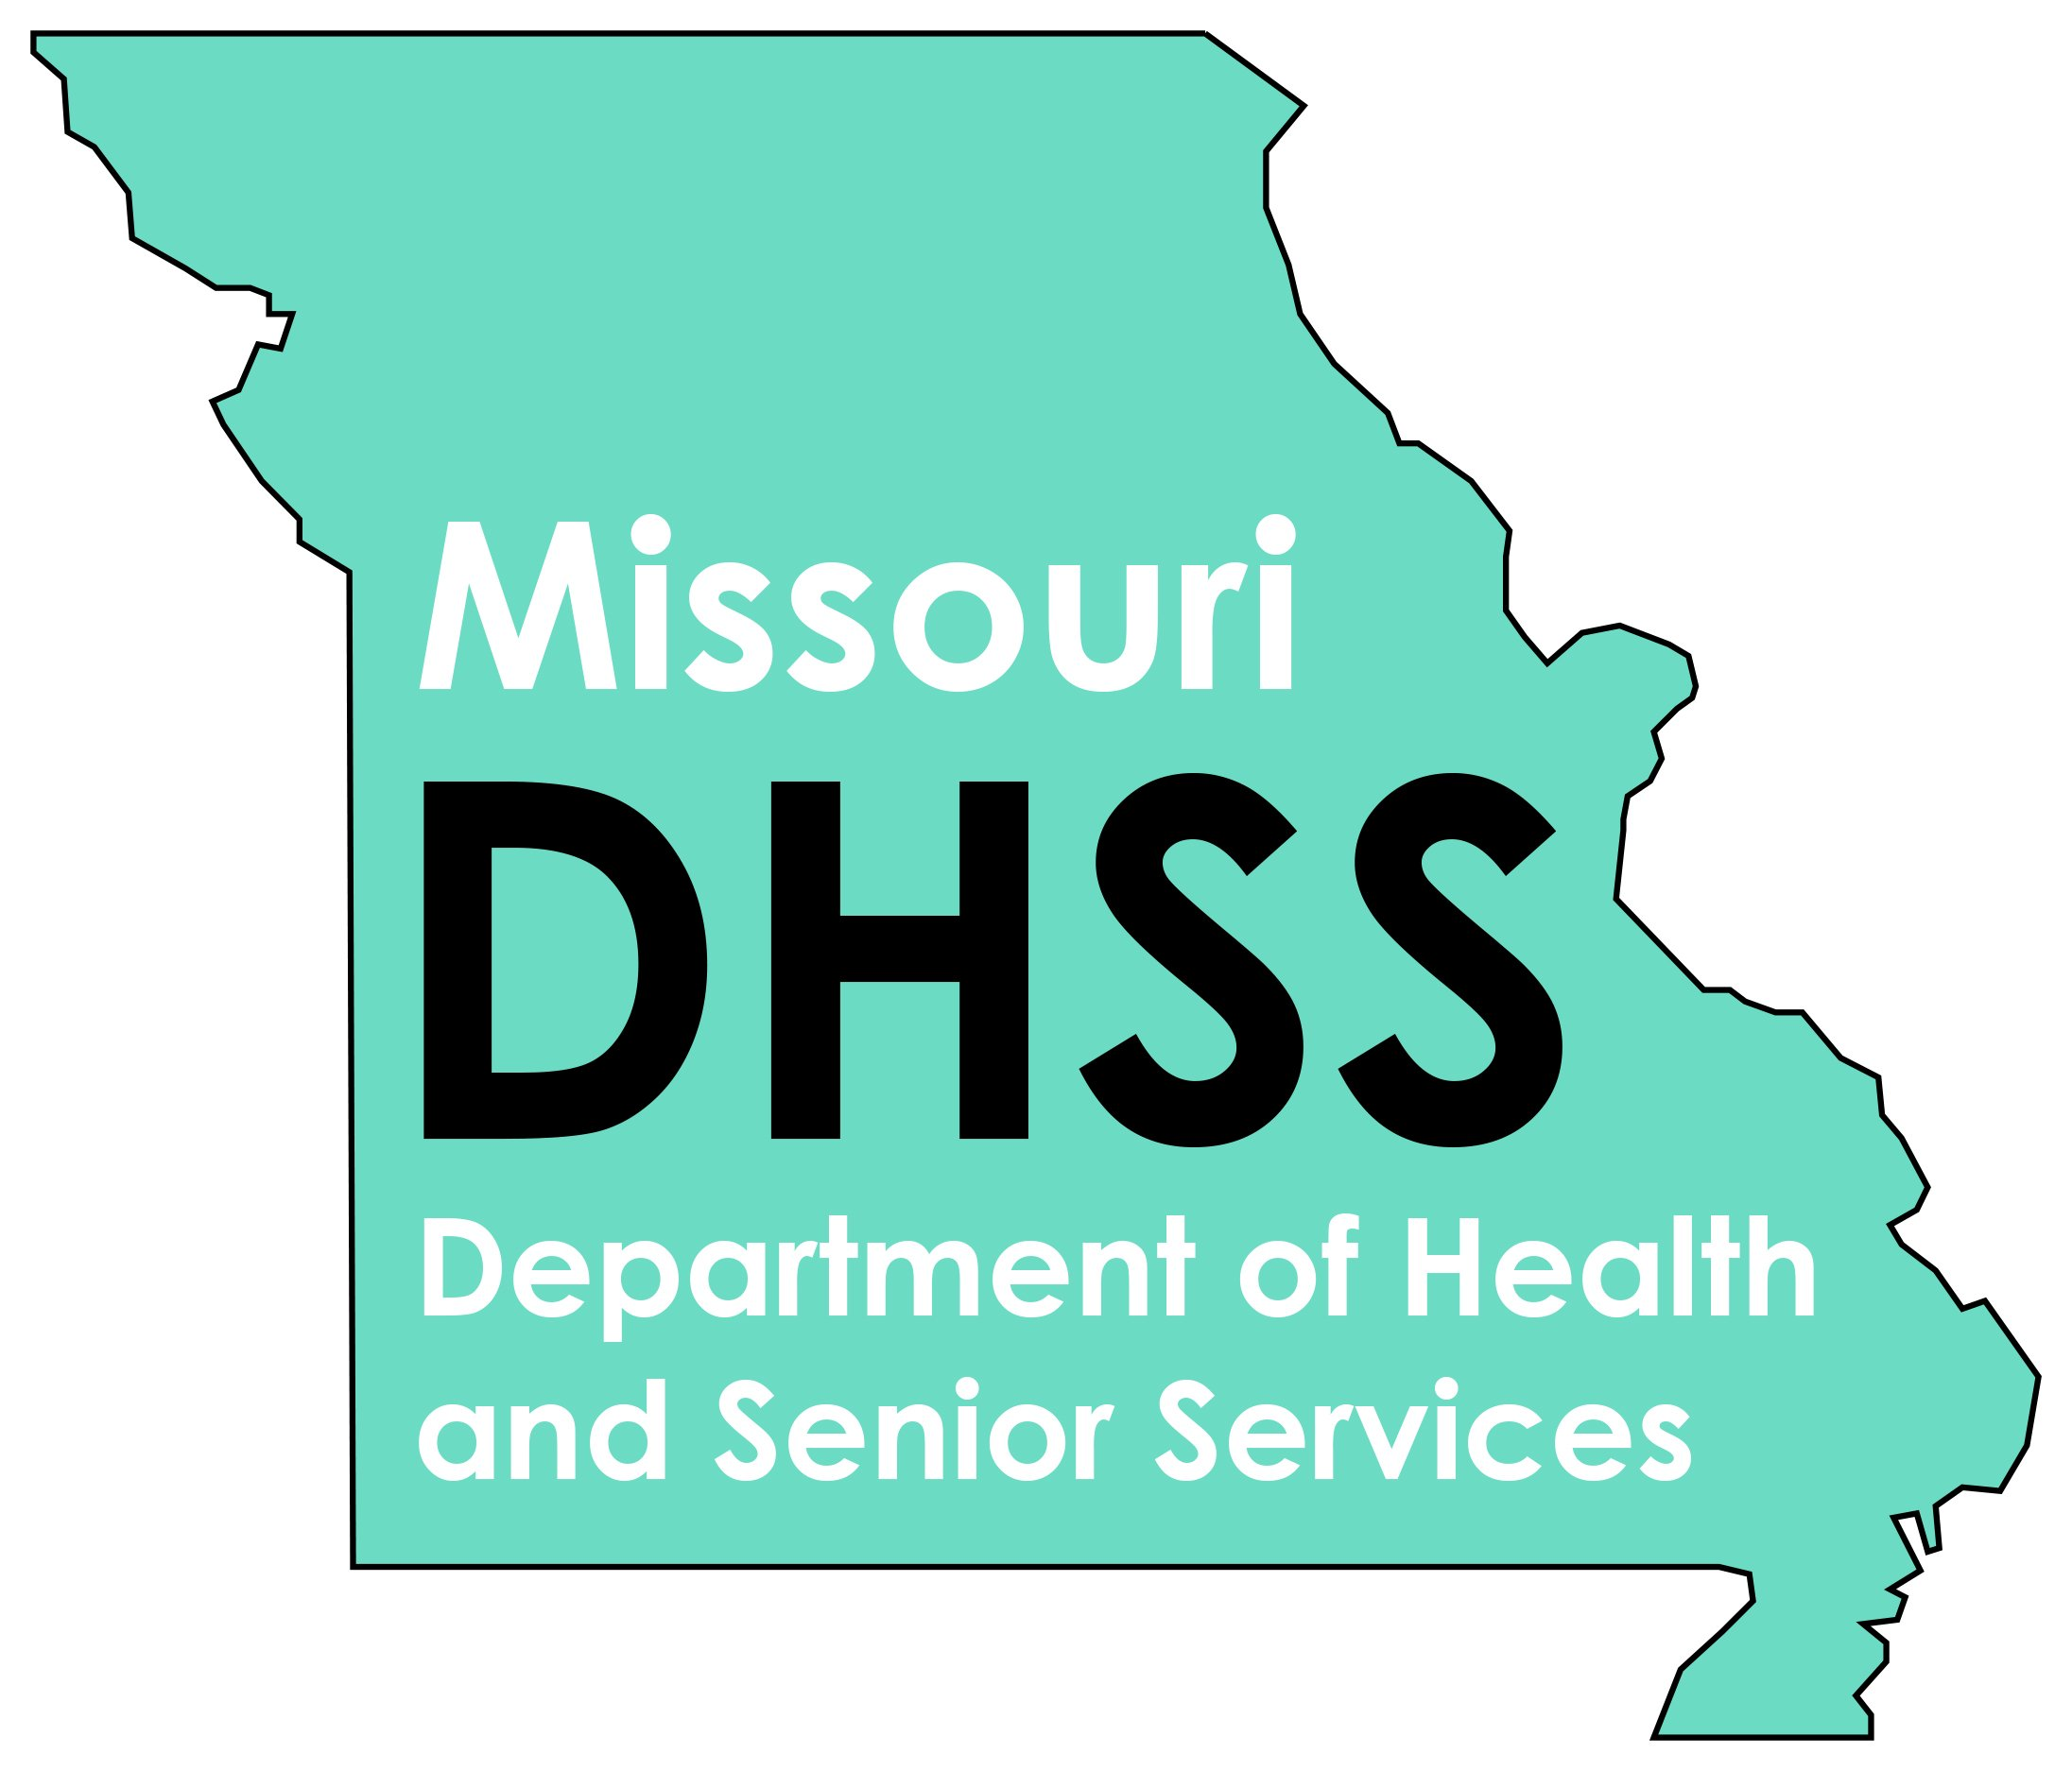 In the first 4 days, Missouri collects more than $2 million in pre-filed application fees from applicants seeking to obtain a medical marijuana license. DHSS says more than 250 applicant forms were submitted.